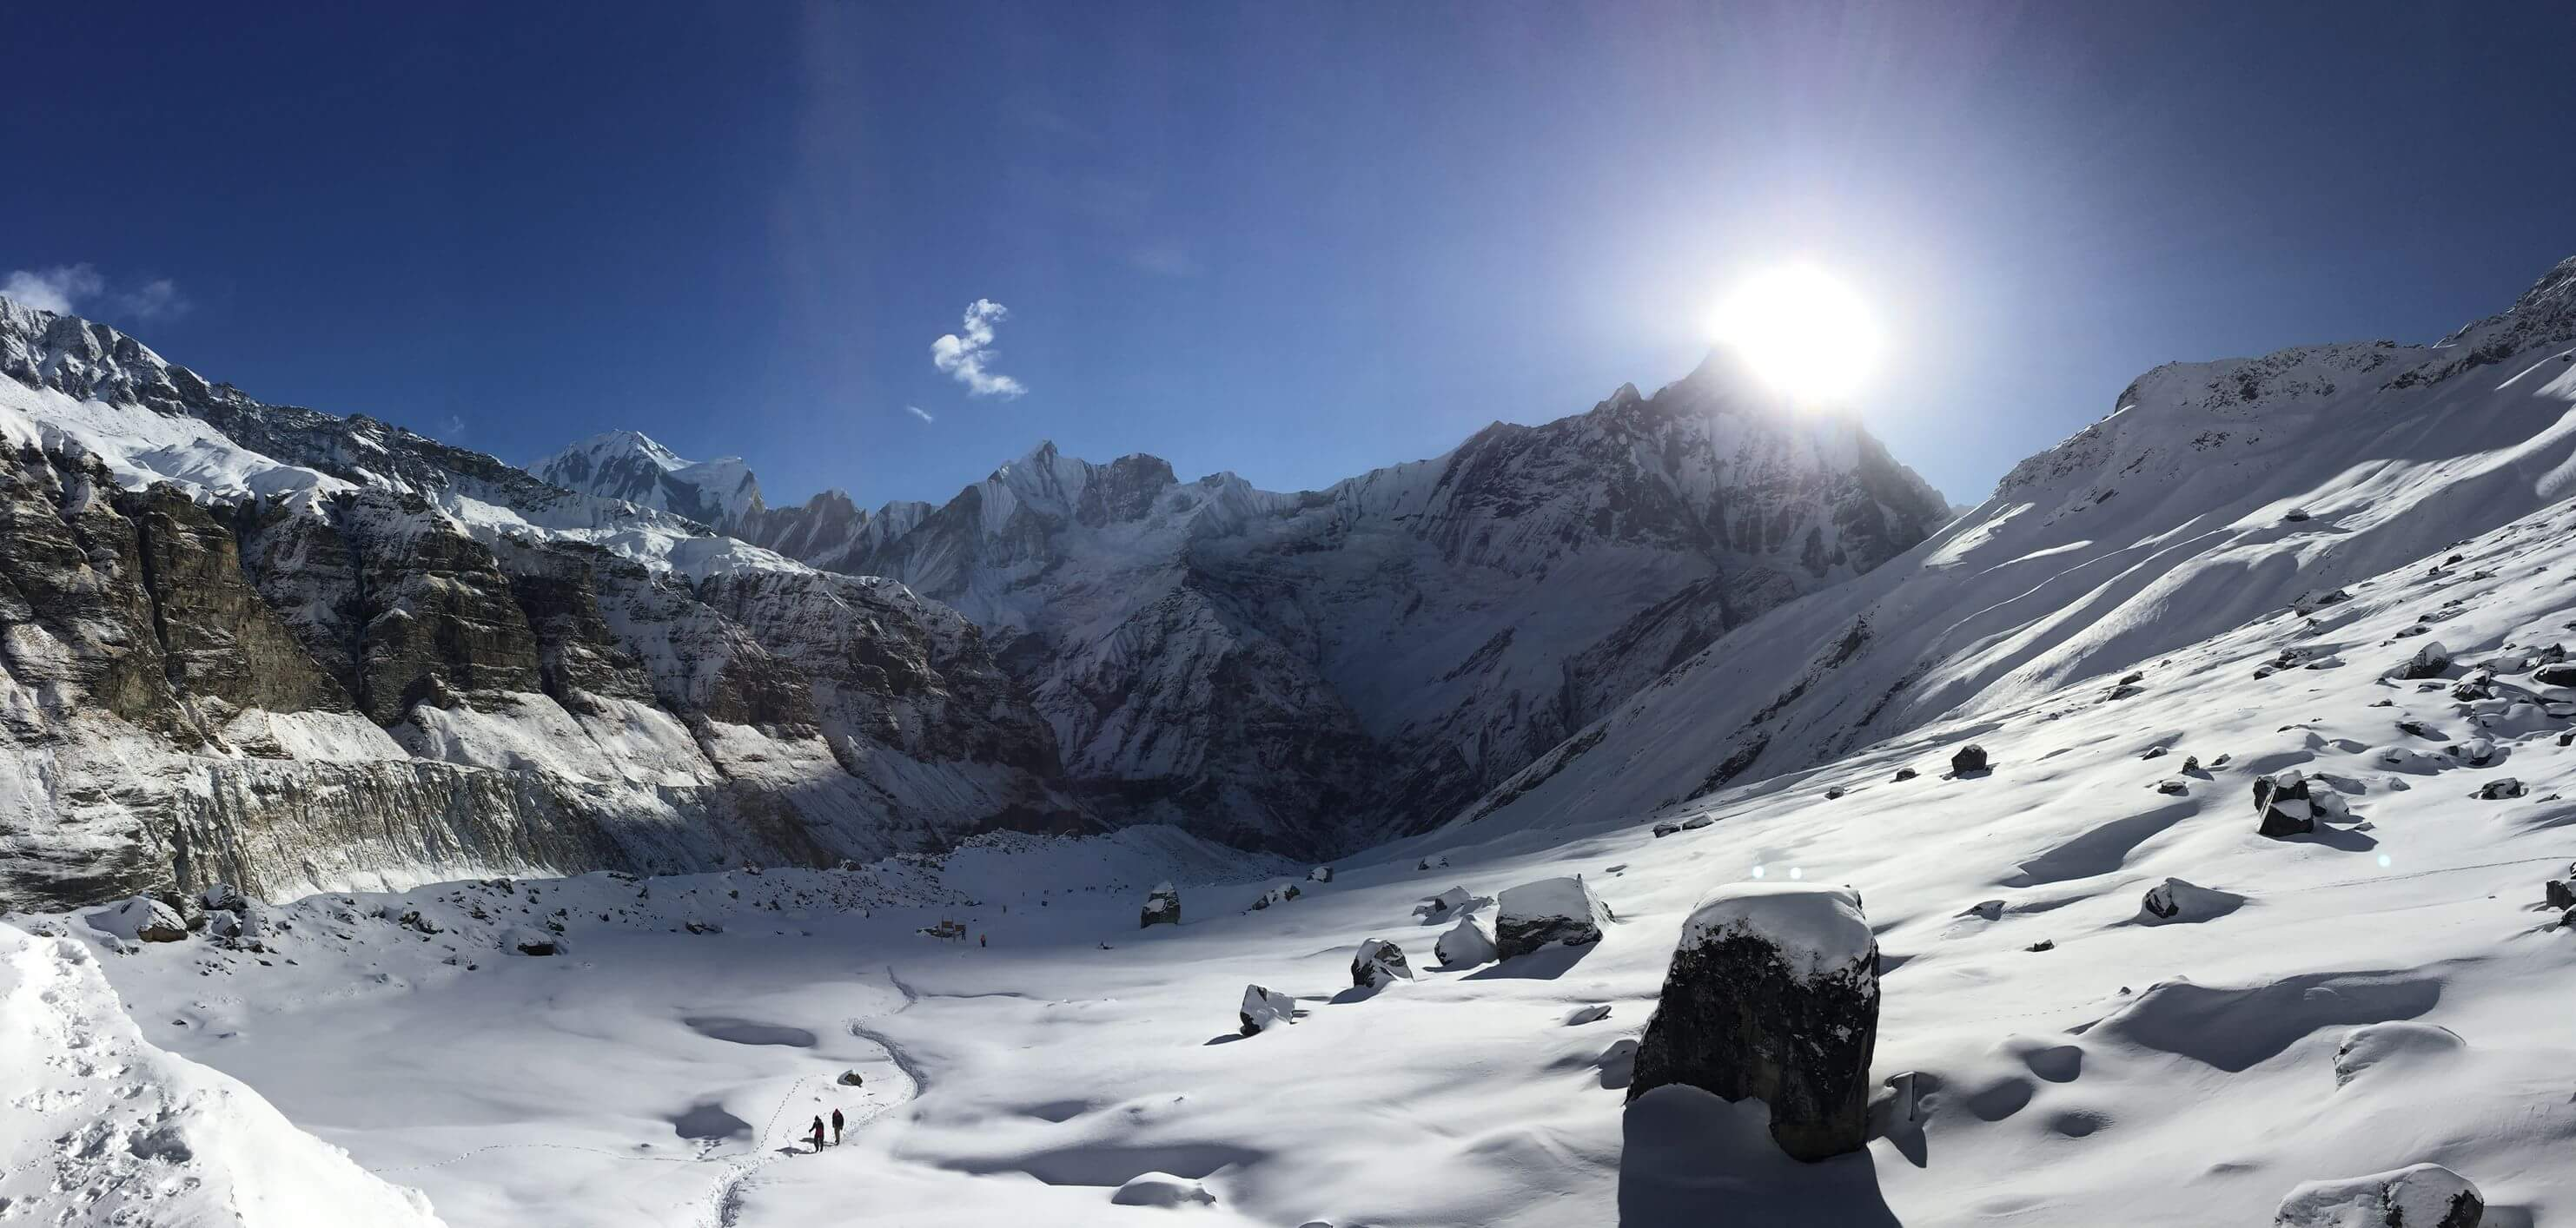 Photo de Annapurna par Marina Maillé pour son article Topo 5 destinations à voir en Asie